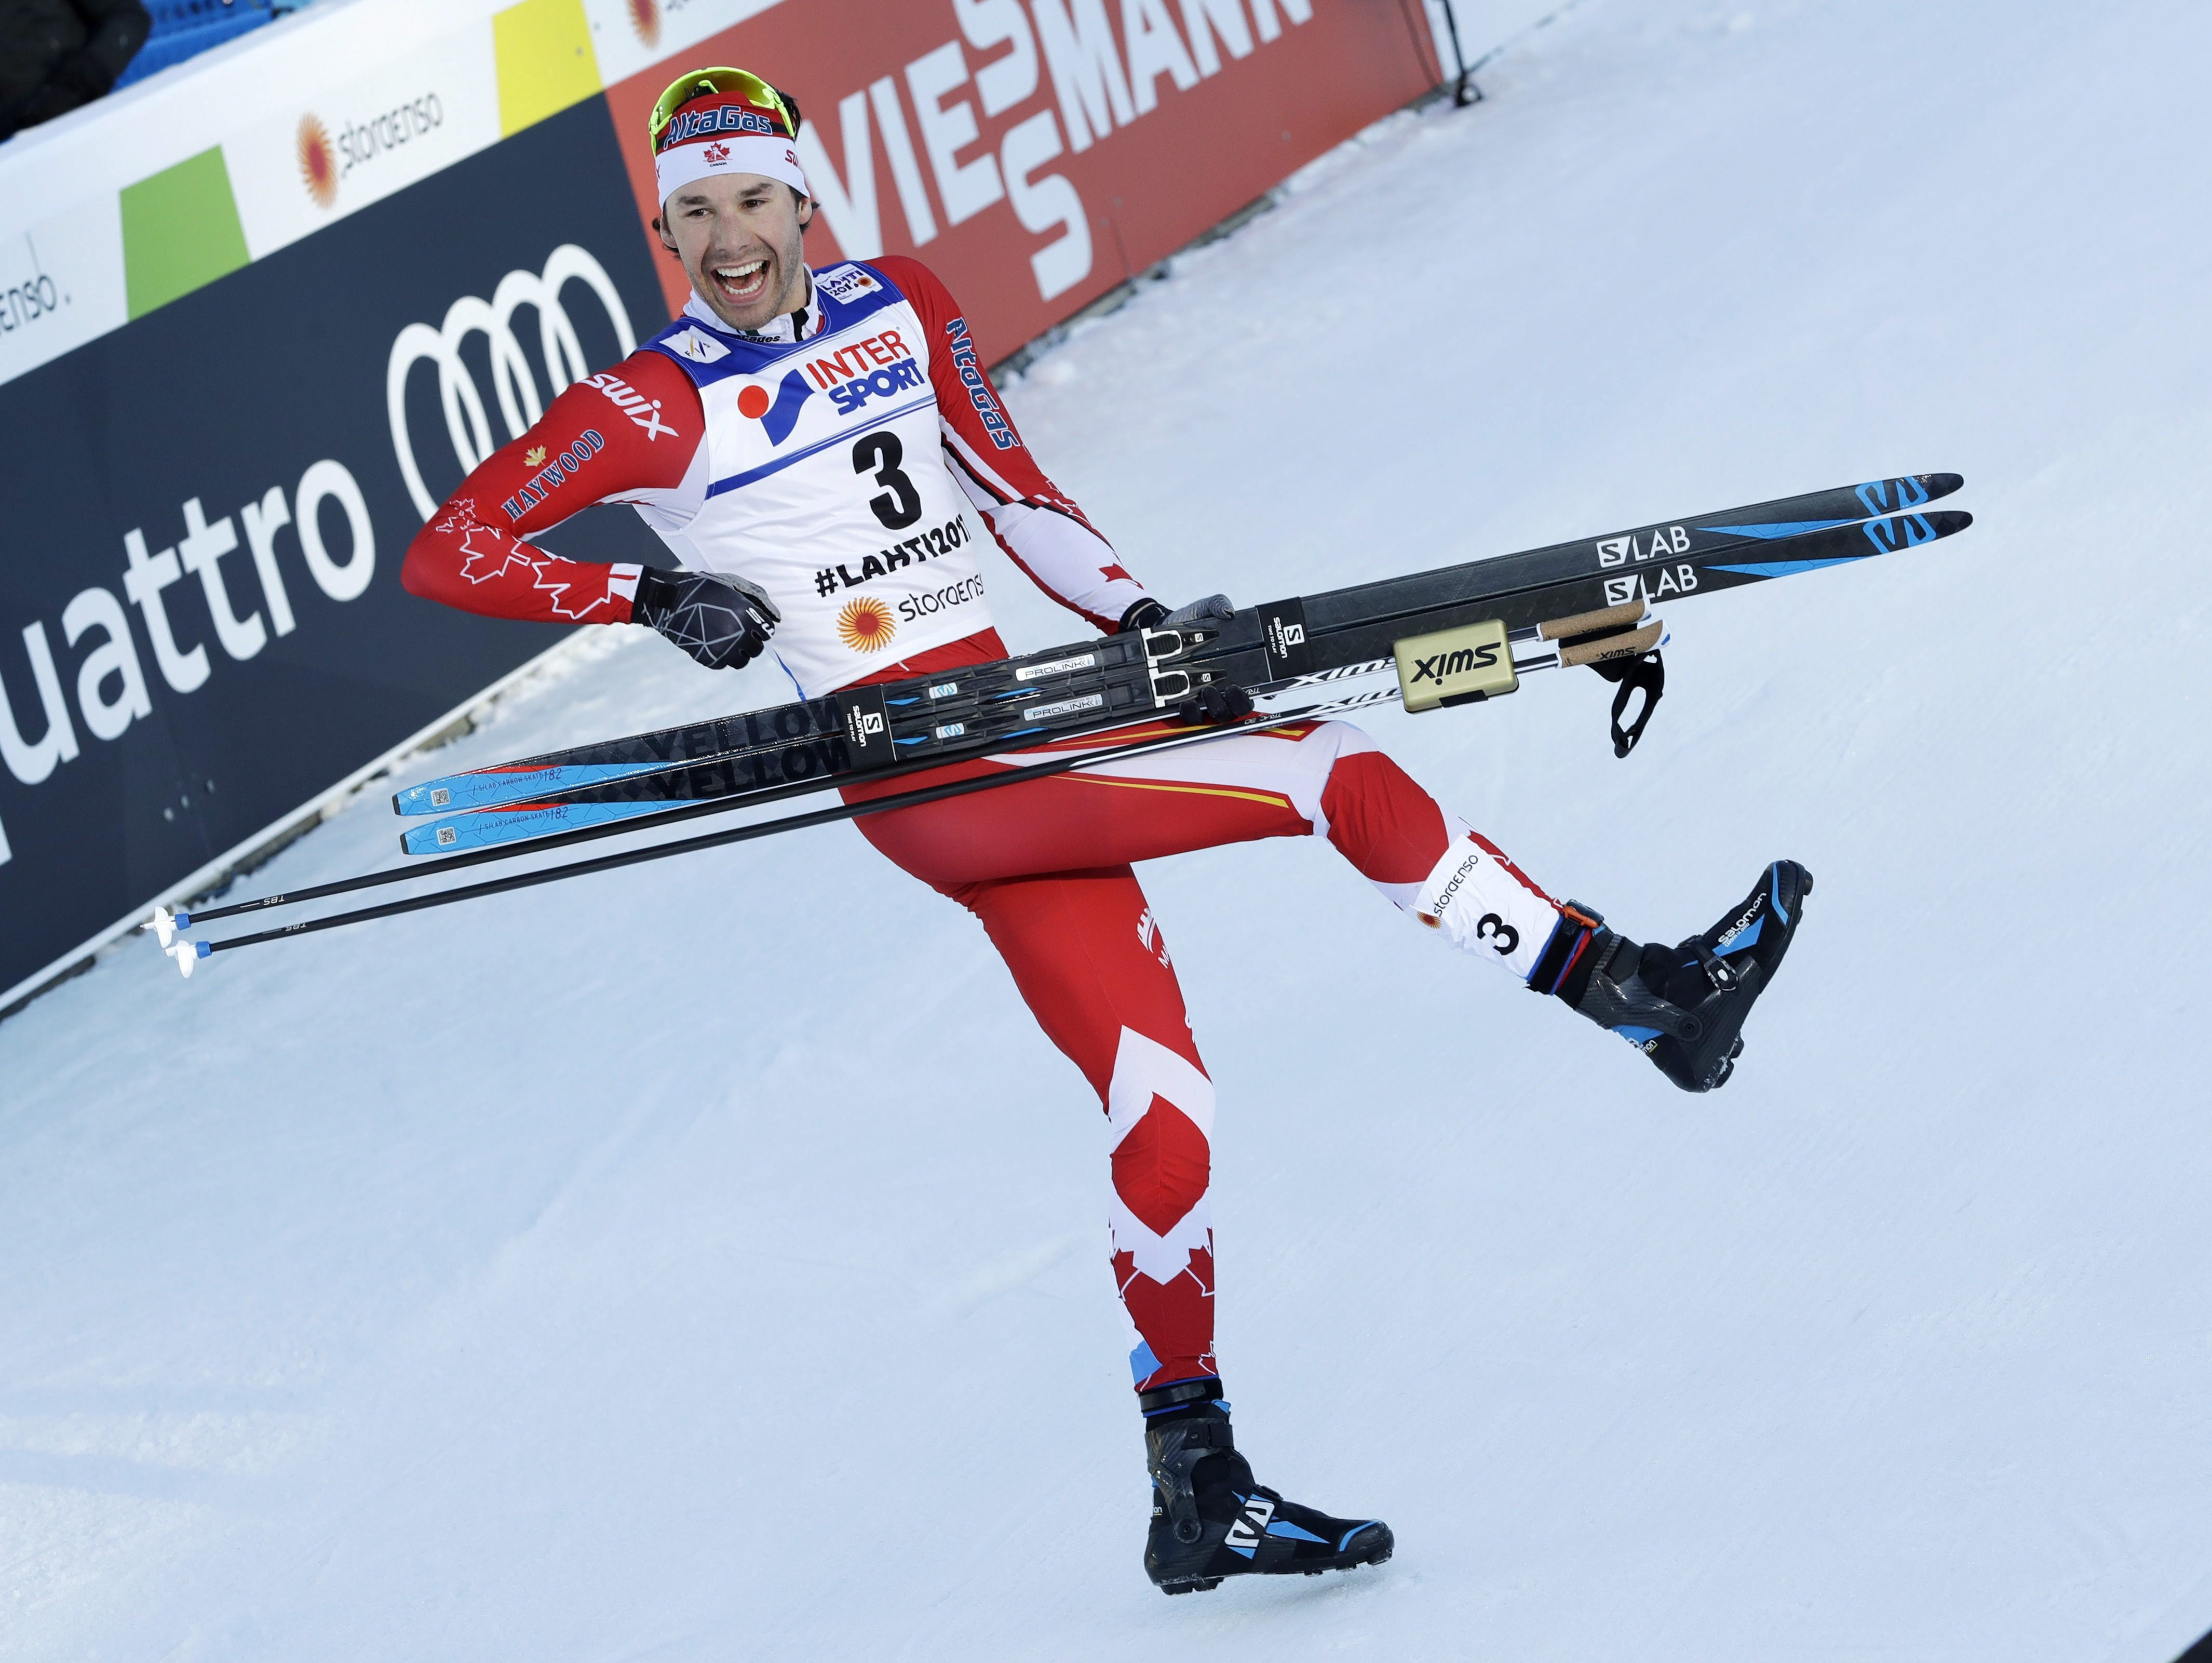 Canada's Alex Harvey celebrates after winning the men's 50 km race during the 2017 Nordic Skiing World Championships in Lahti, Finland, Sunday, March 5, 2017. (AP Photo/Matthias Schrader)